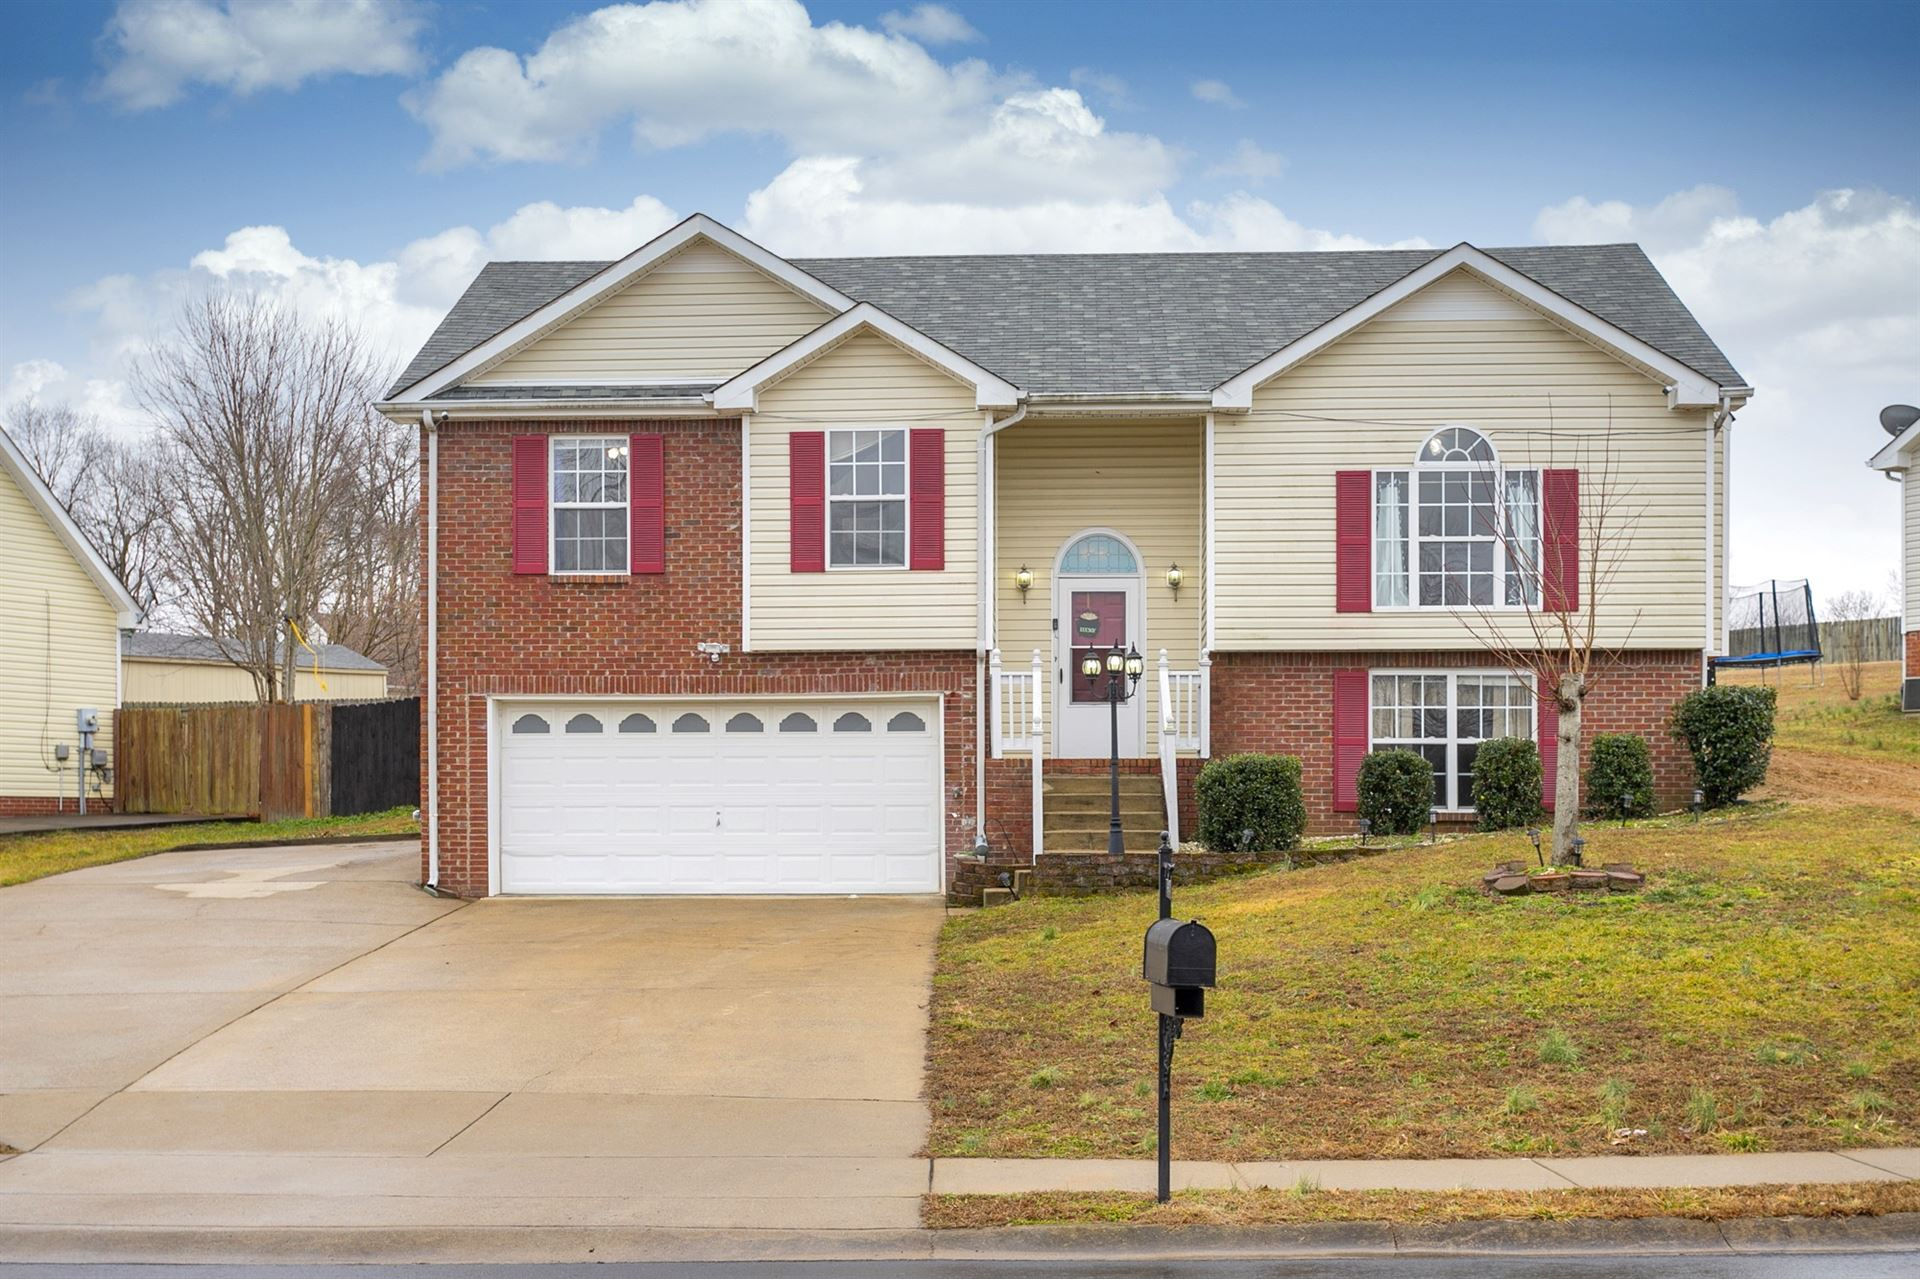 1661 Cedar Springs Ct, Clarksville, TN 37042 - MLS#: 2232158